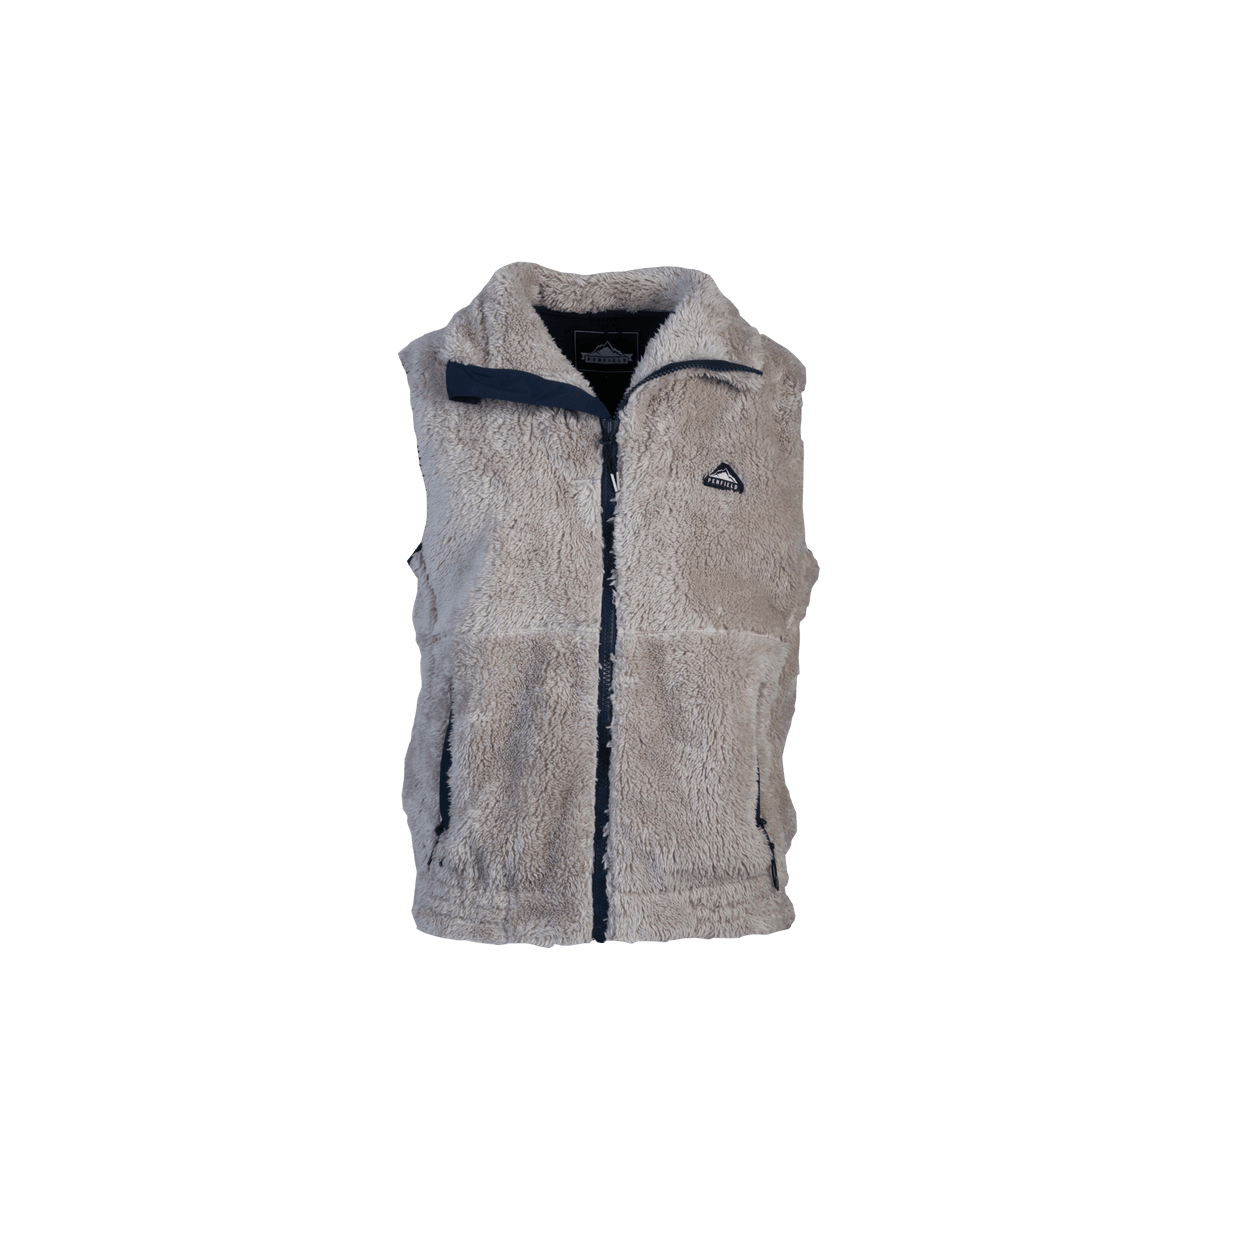 Mens EAGLE Fleece Vest - Grey